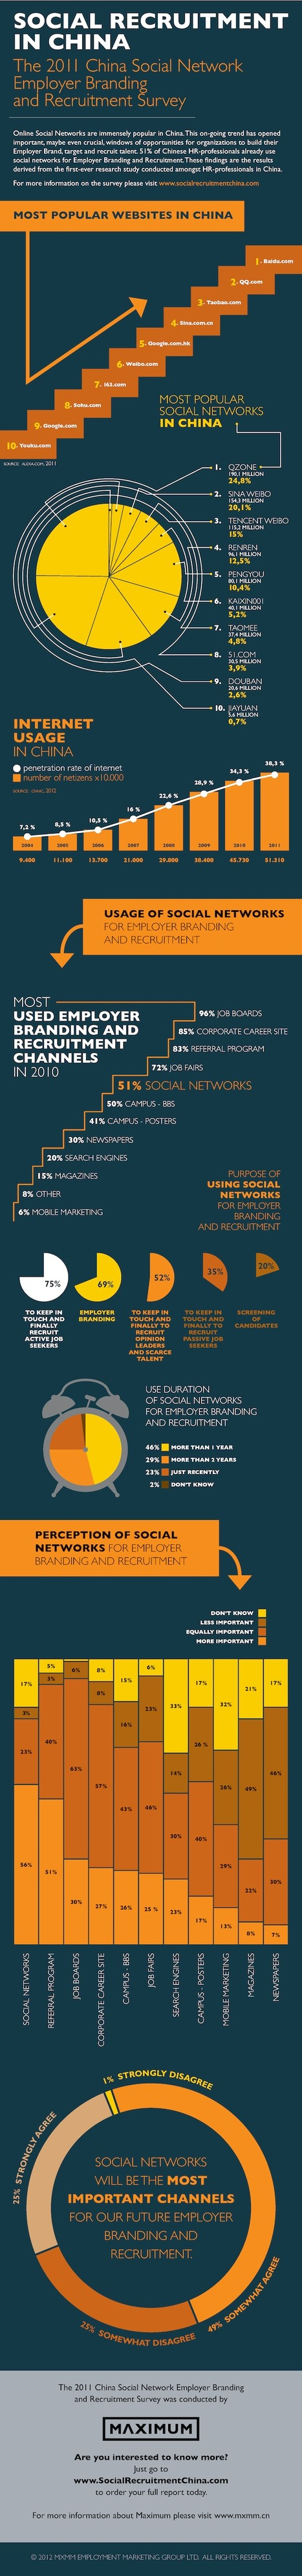 #SocialRecruiting and employer branding in China(infographic)#SRChina   Talent Communities   Scoop.it